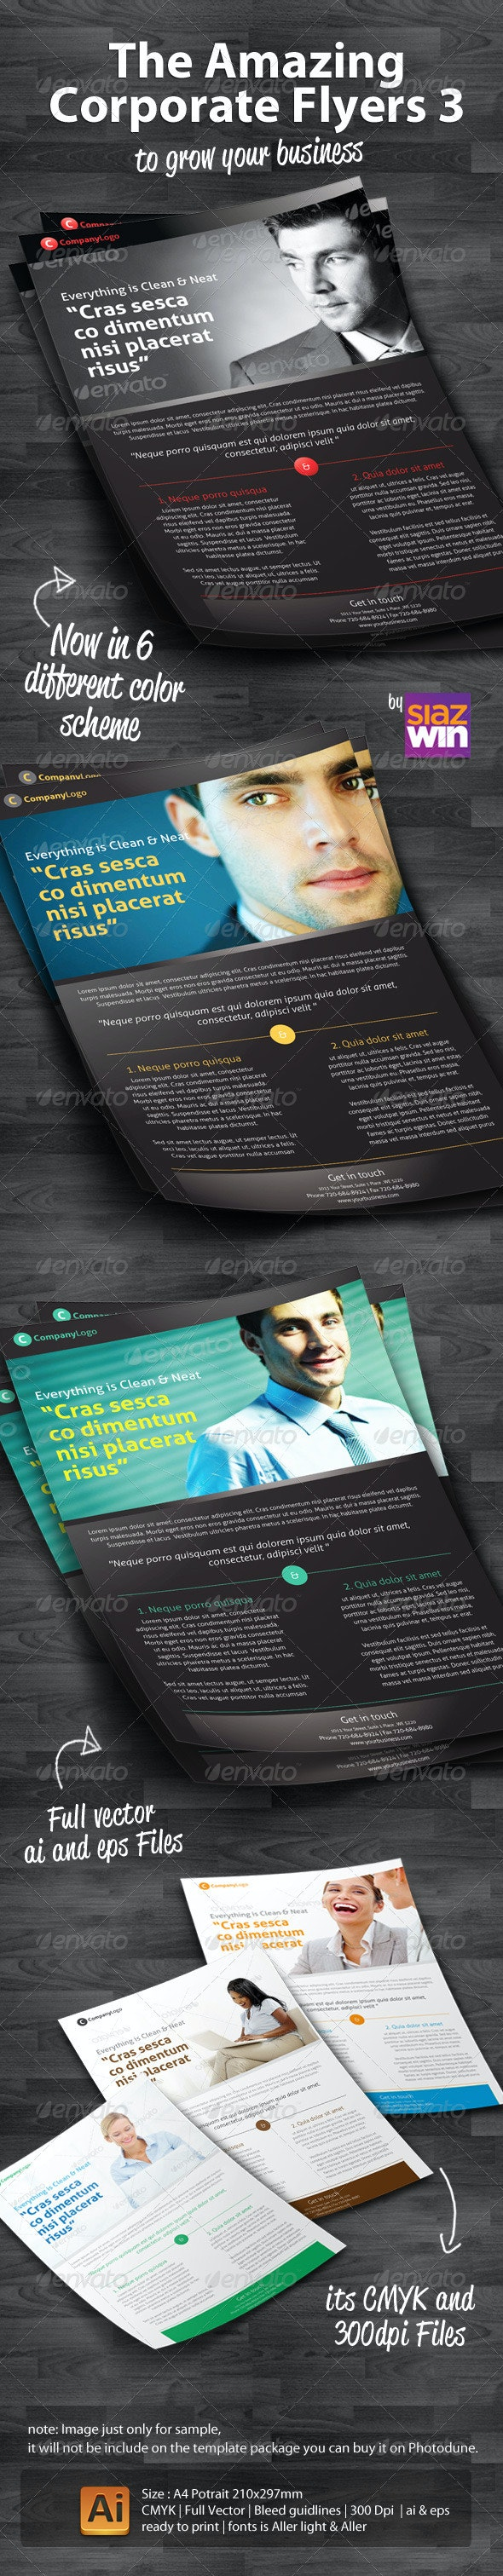 The Amazing Corporate Flyers 3 - Corporate Flyers